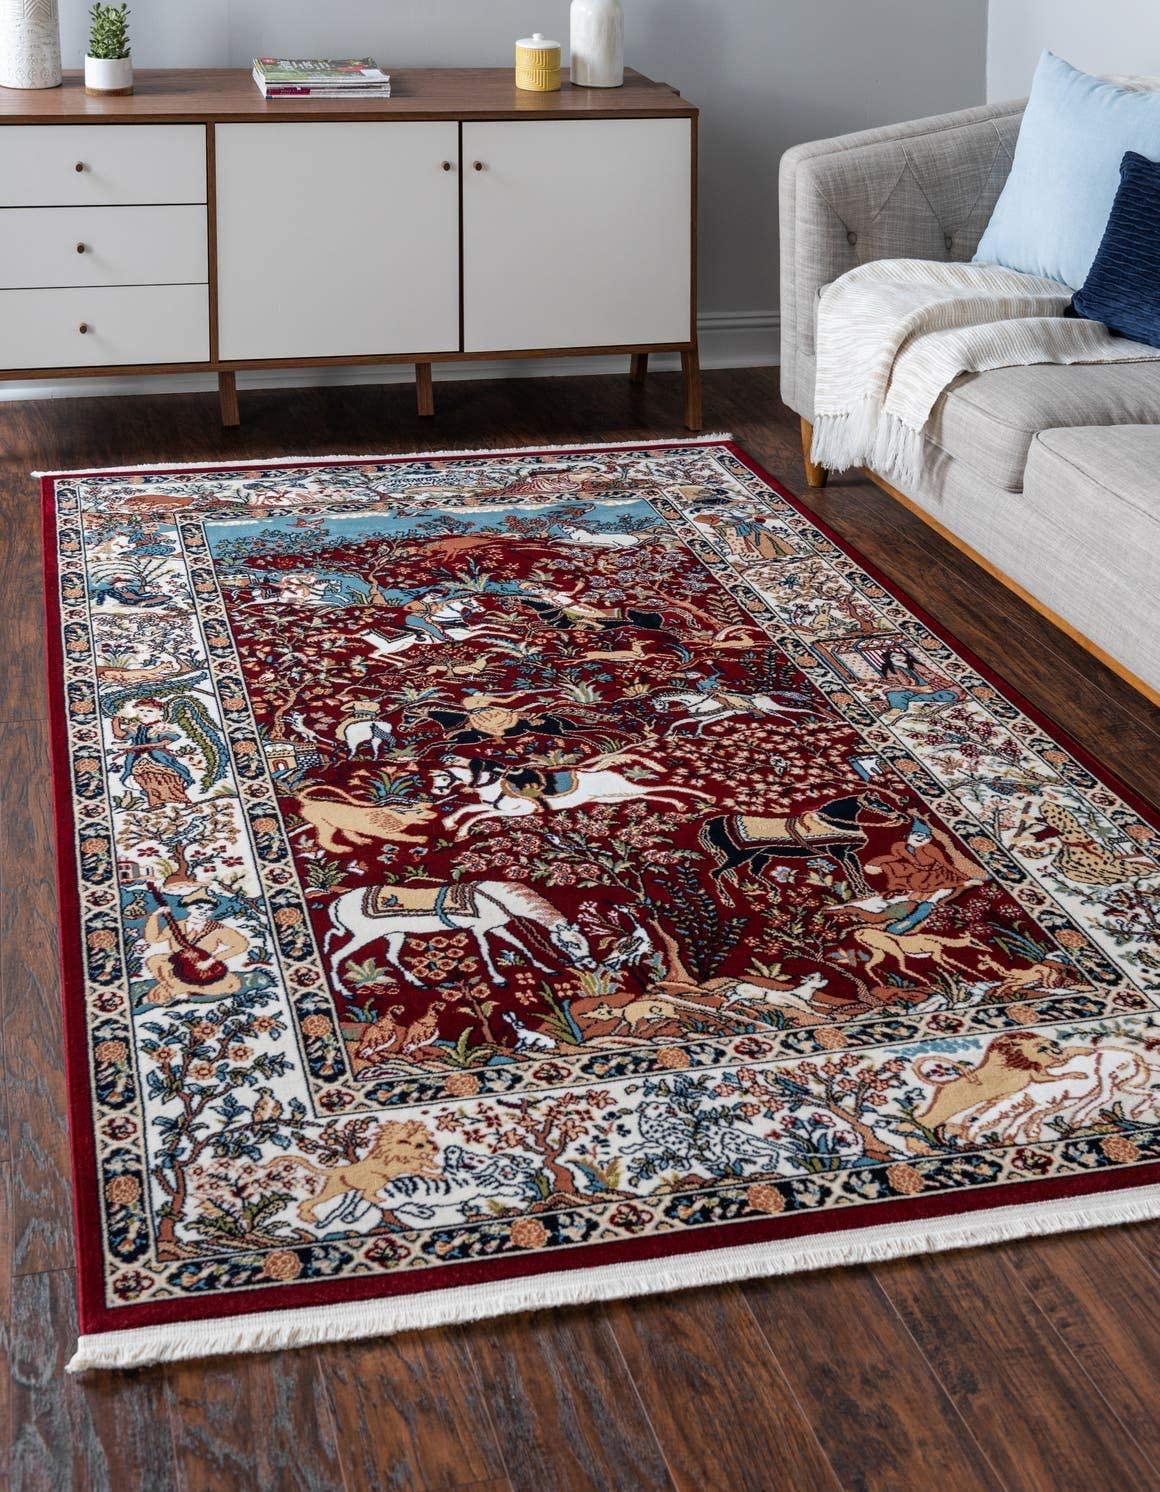 Unique Loom Narenj Collection Classic Traditional Hunting Scene Textured Burgundy Area Rug 5 0 x 8 0